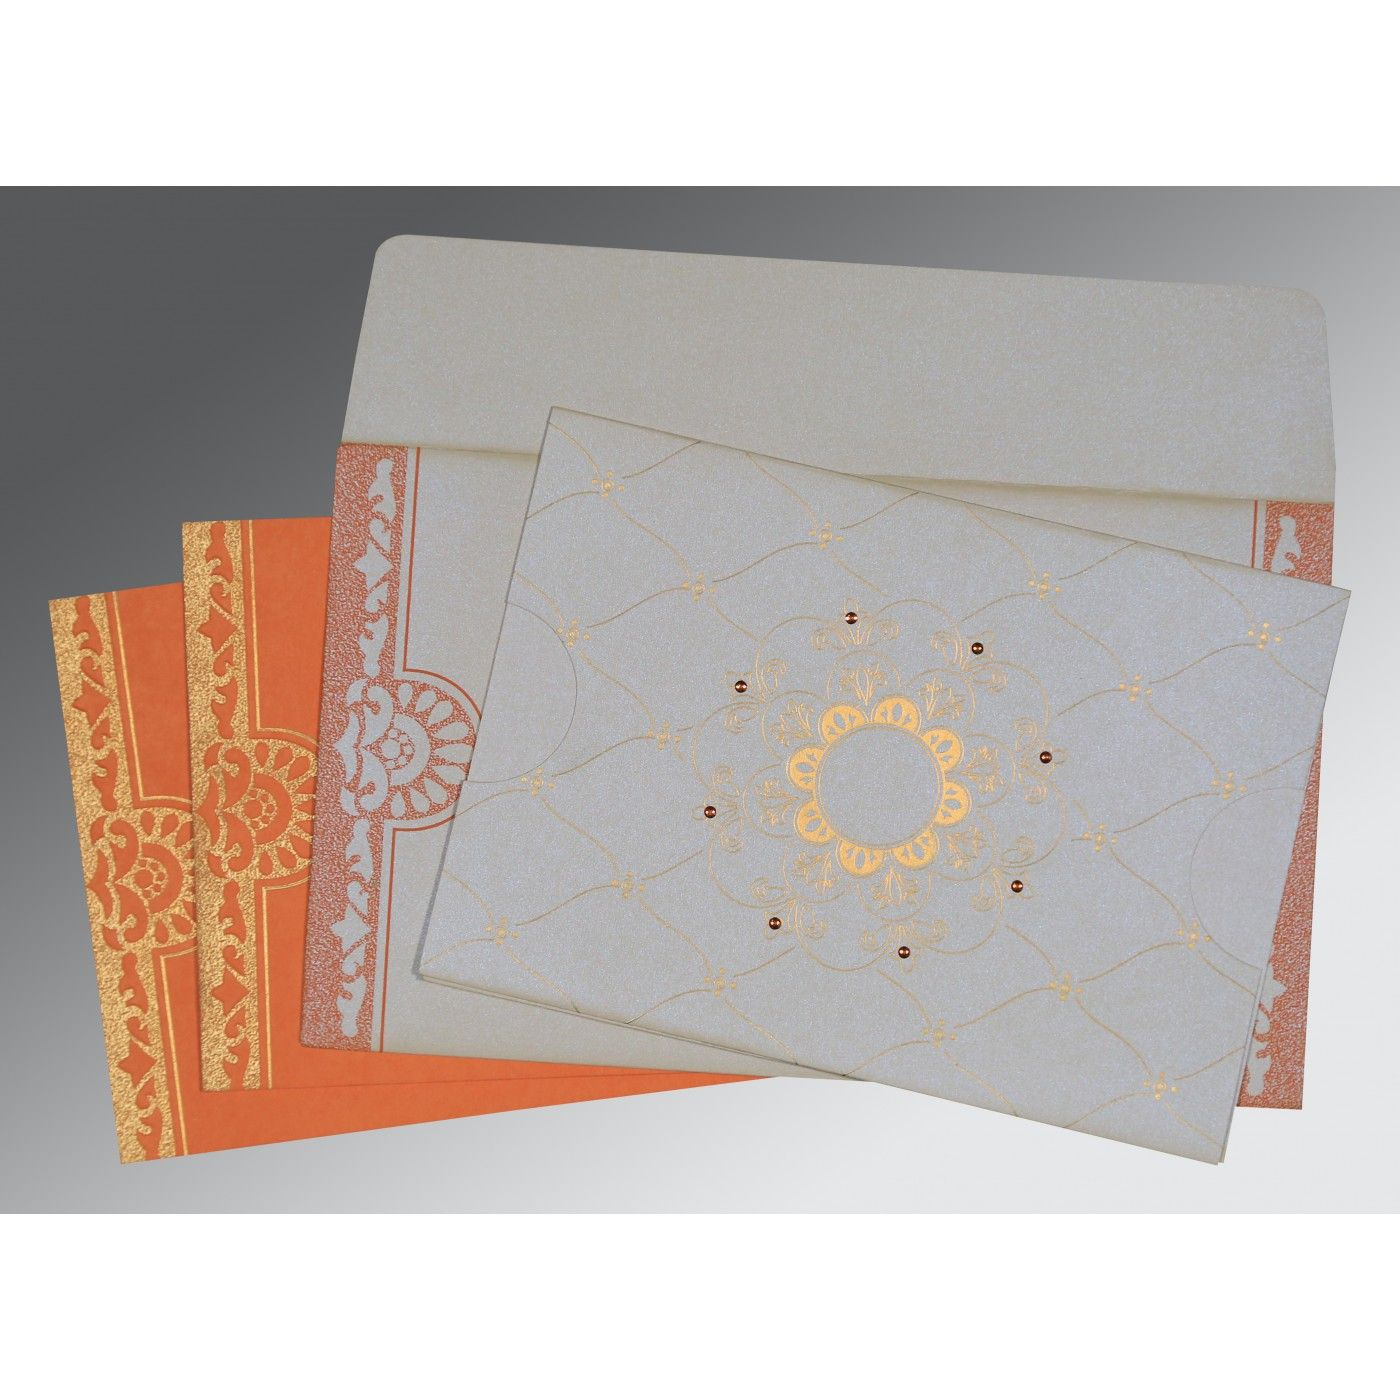 OFF-WHITE BLUE SHIMMERY FLORAL THEMED - SCREEN PRINTED WEDDING CARD : CW-8227N - IndianWeddingCards